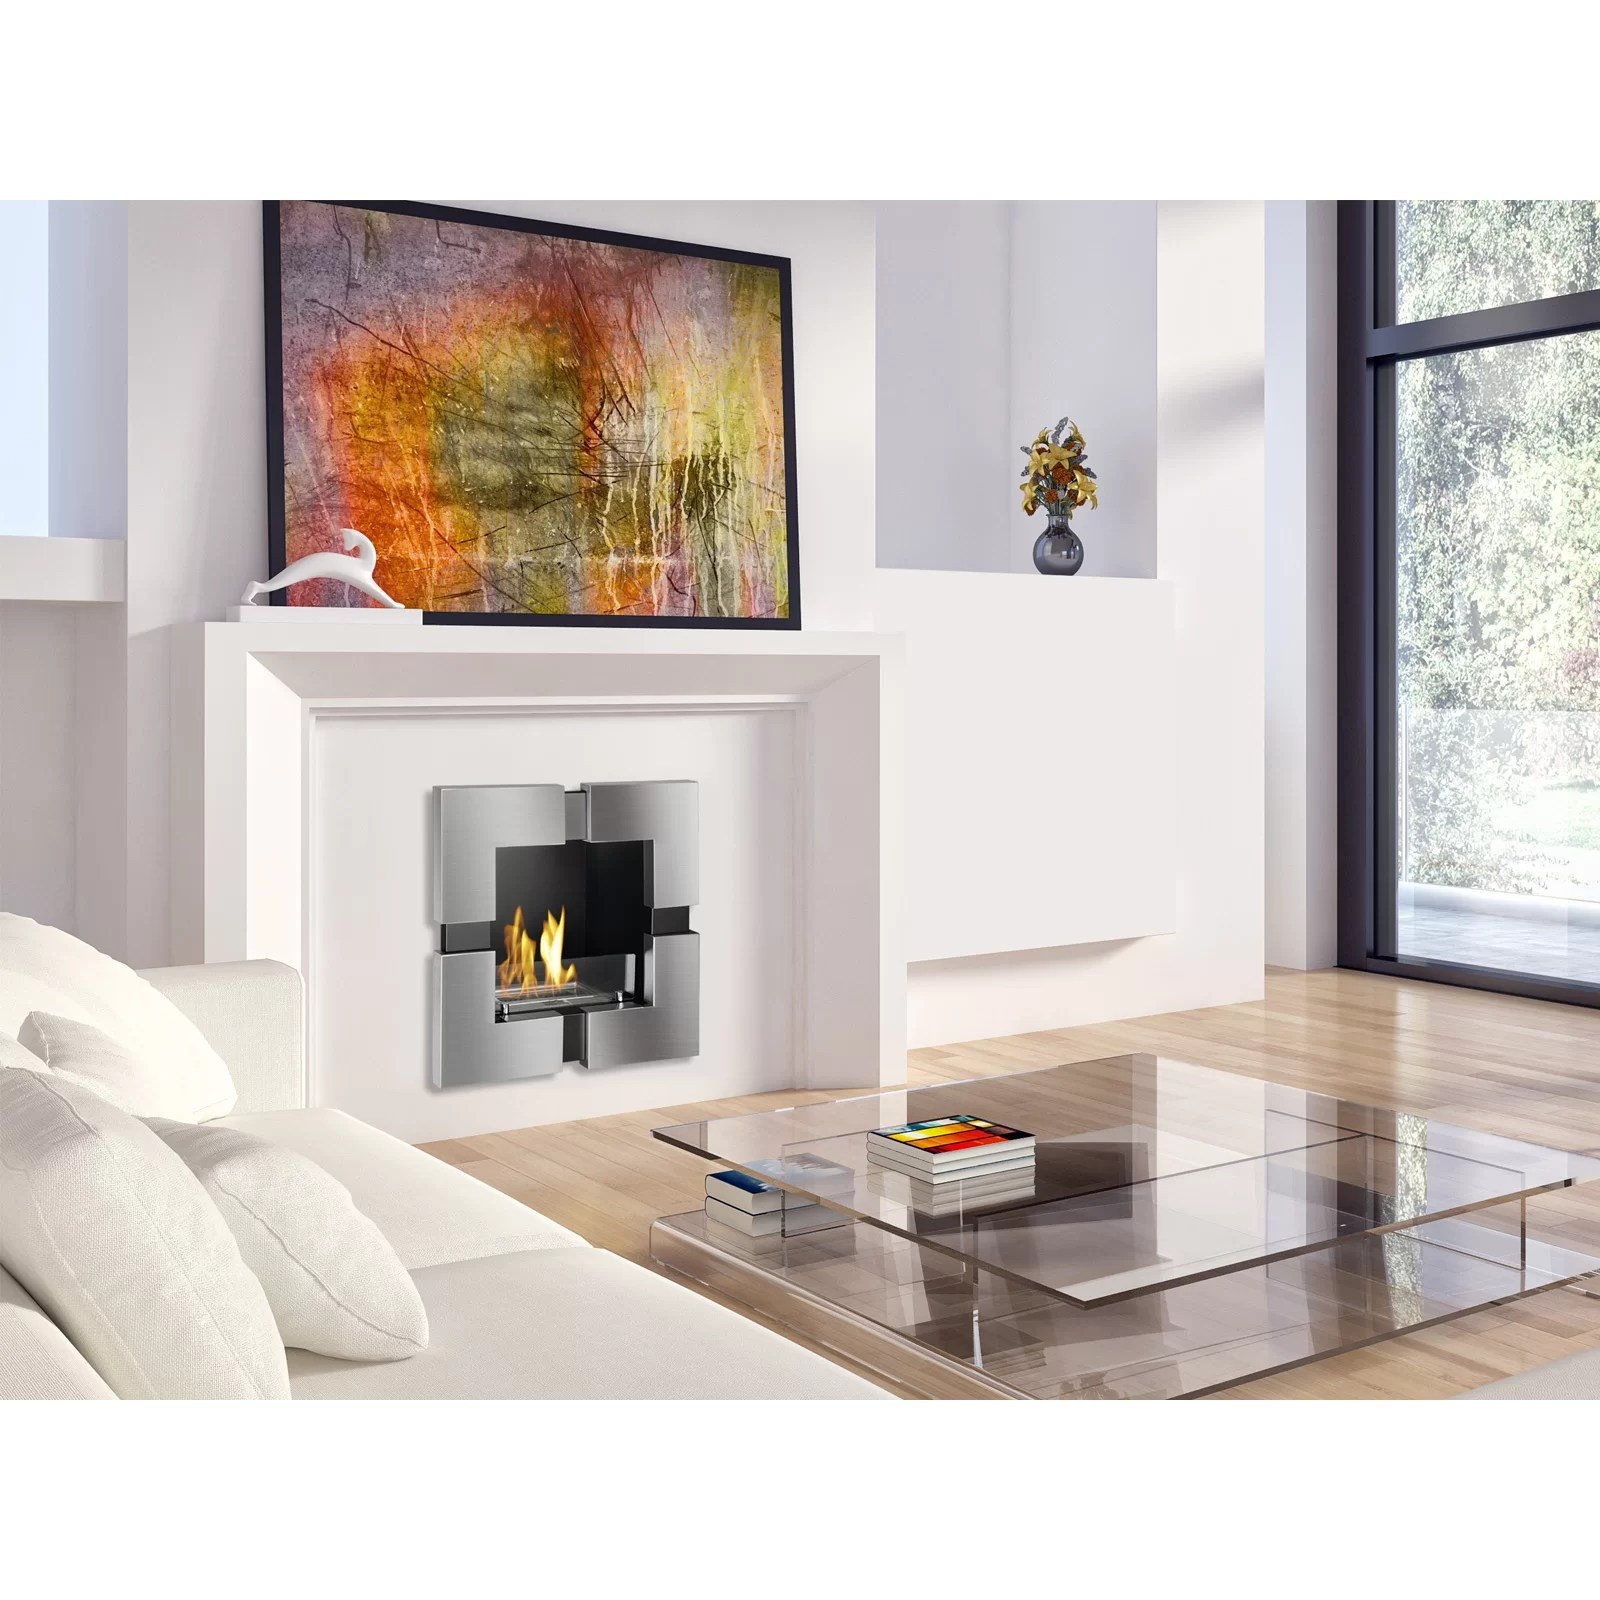 Ignis Tokyo Recessed Ventless Wall Mount Ethanol Fireplace